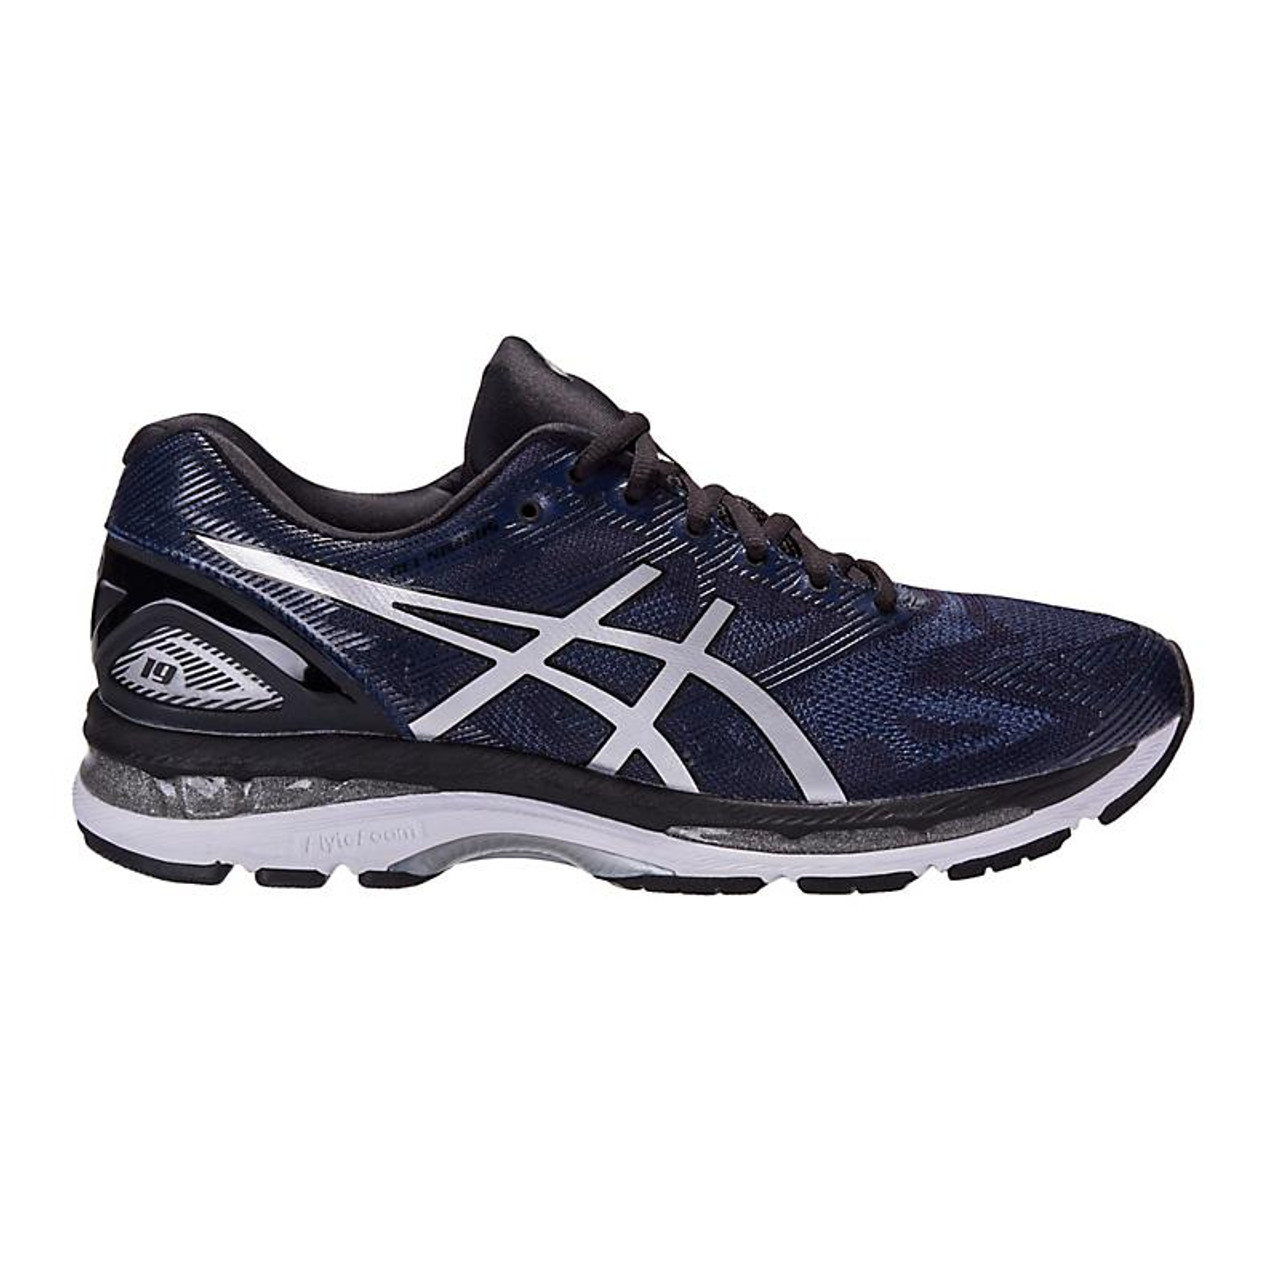 new style b72af 81b42 Men's ASICS GEL-Nimbus 19 Exclusive